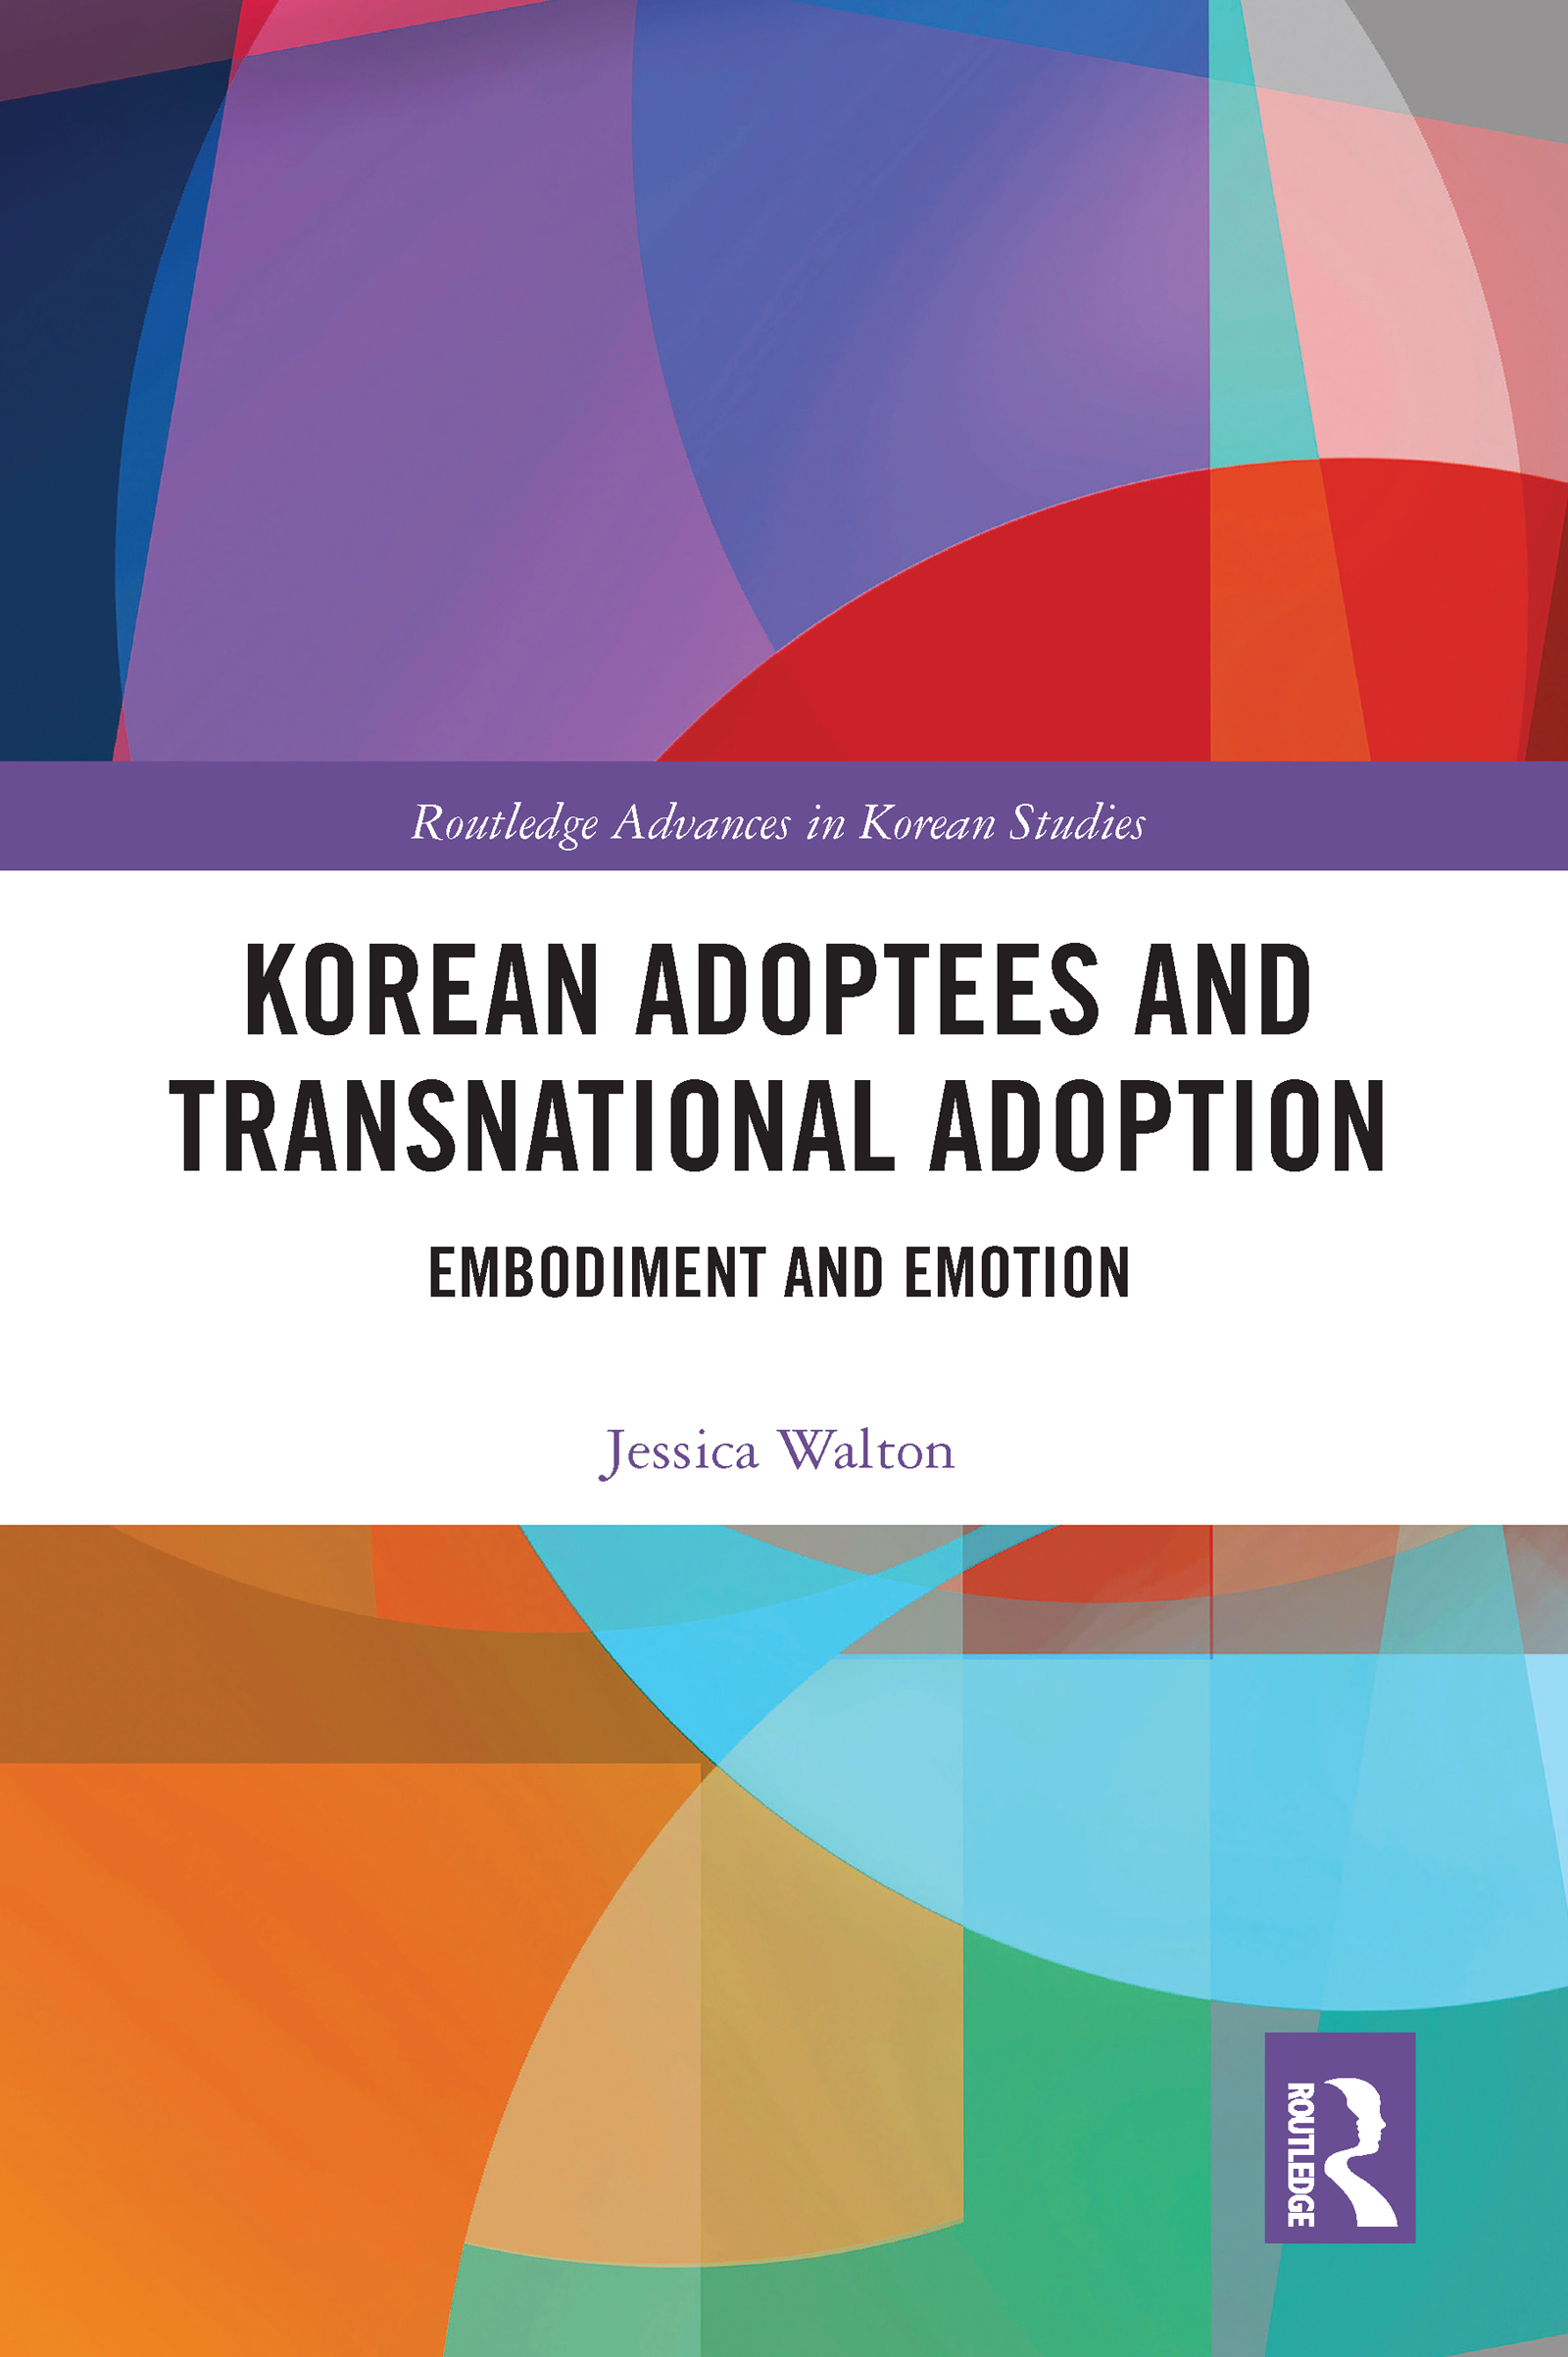 Korean Adoptees and Transnational Adoption